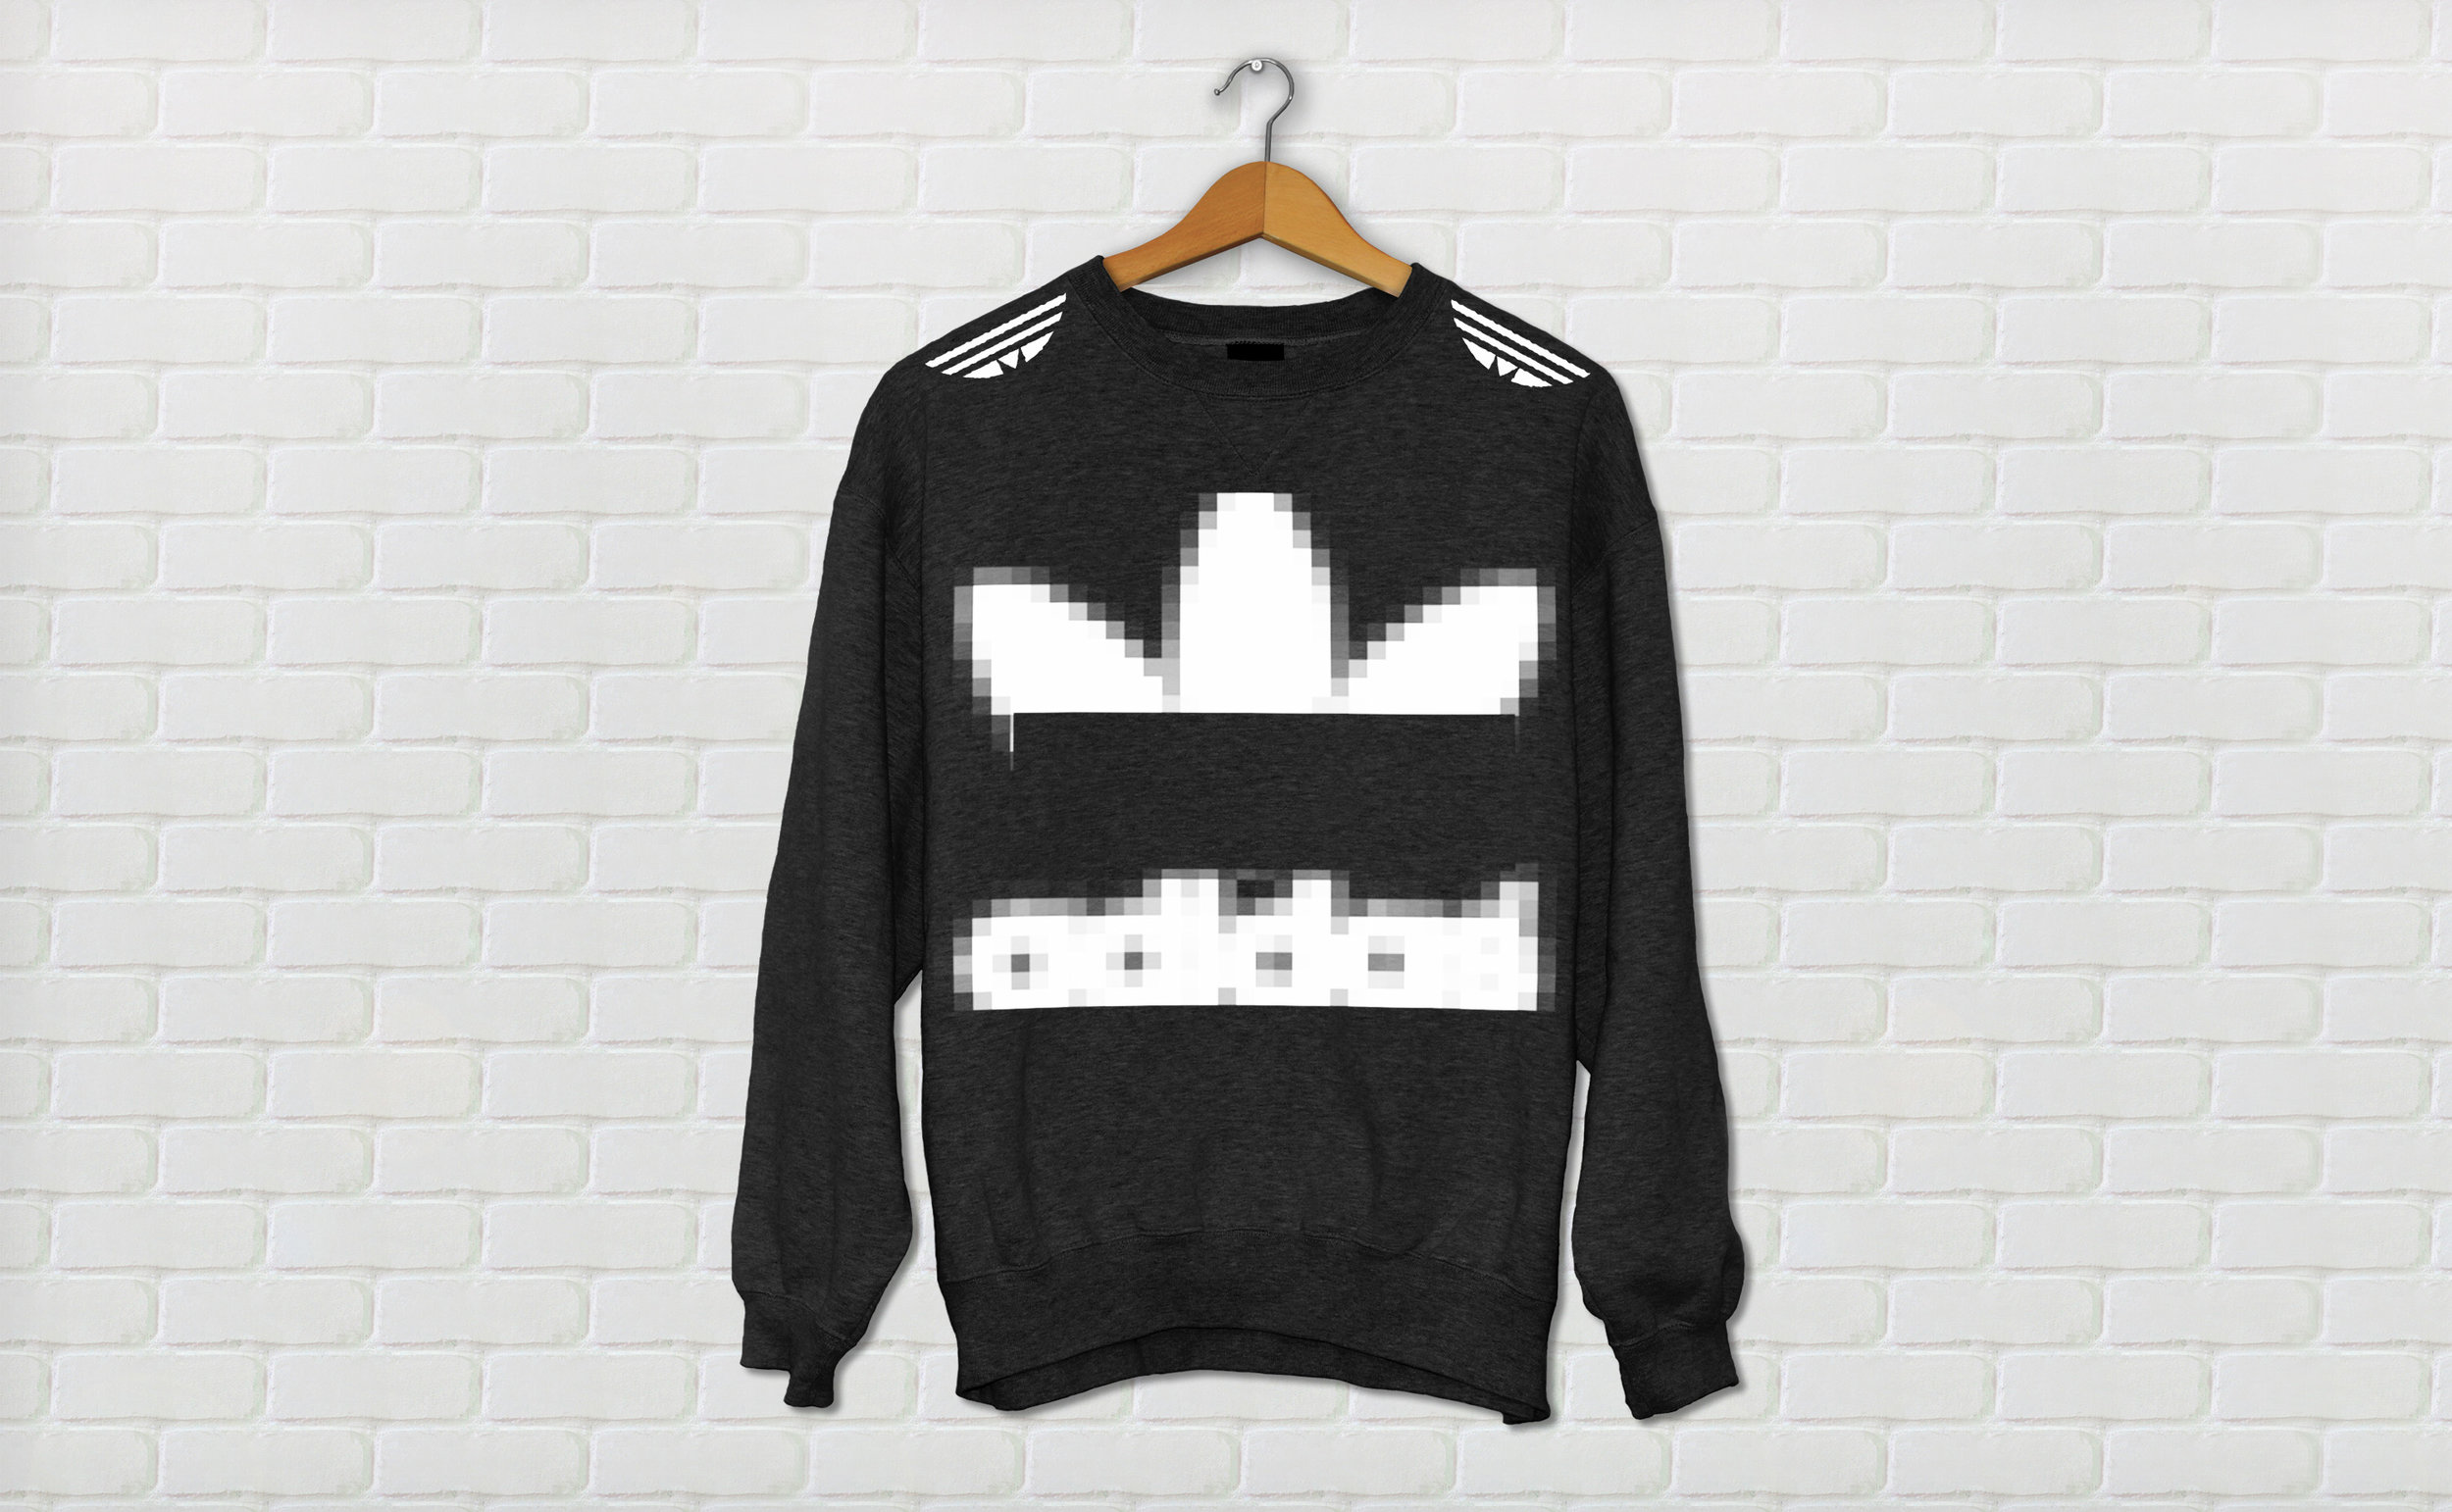 pixelated sweater from Mysprint$